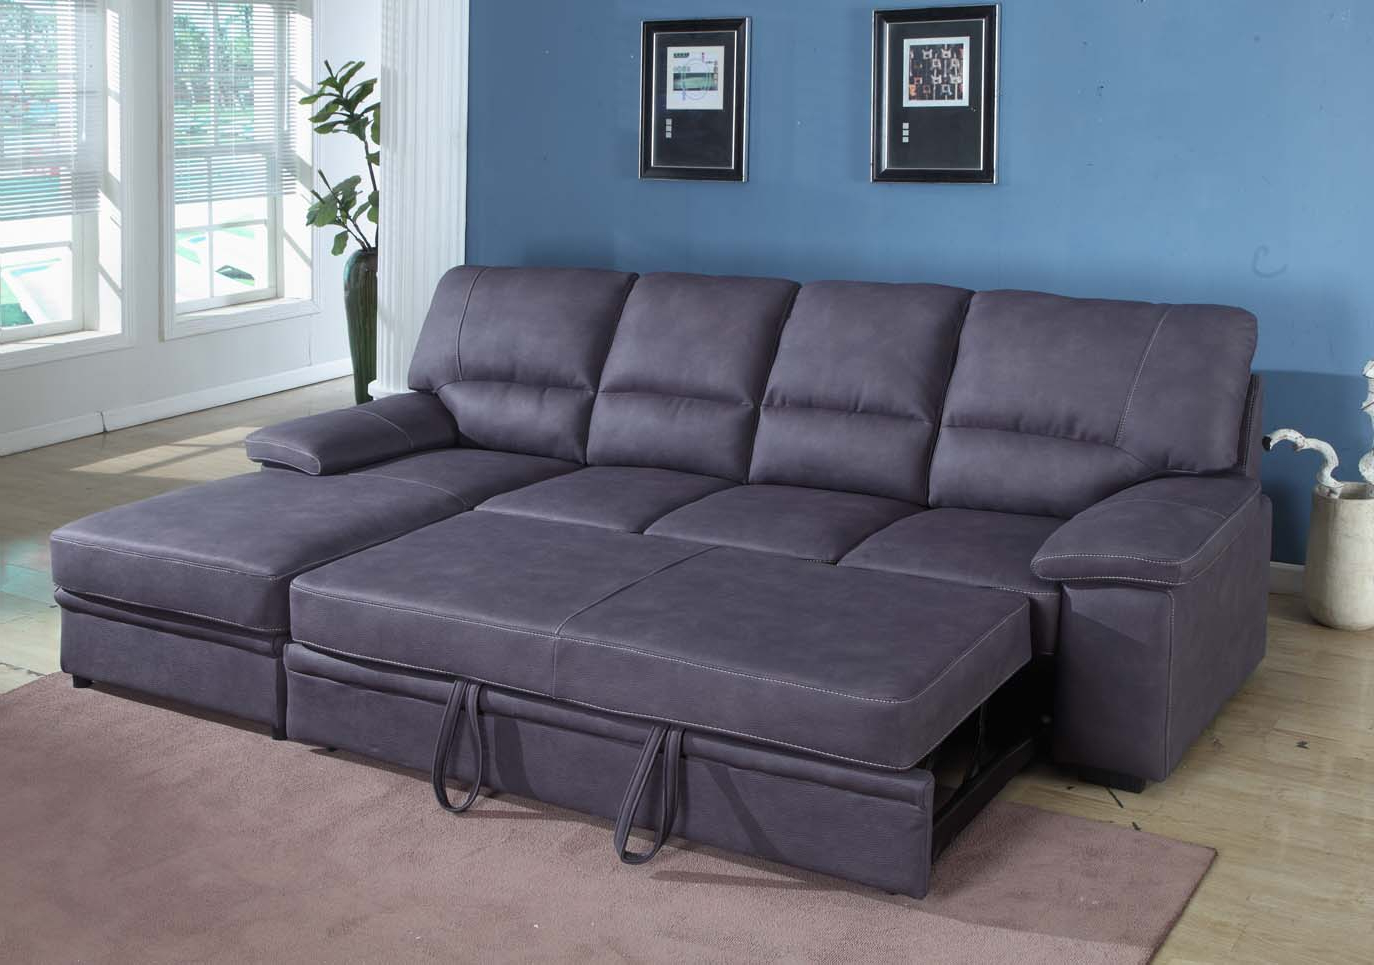 Popular Seating Furniture – Sleeper Sectional Sofa – Pickndecor With Regard To Lucy Grey 2 Piece Sleeper Sectionals With Laf Chaise (View 13 of 20)